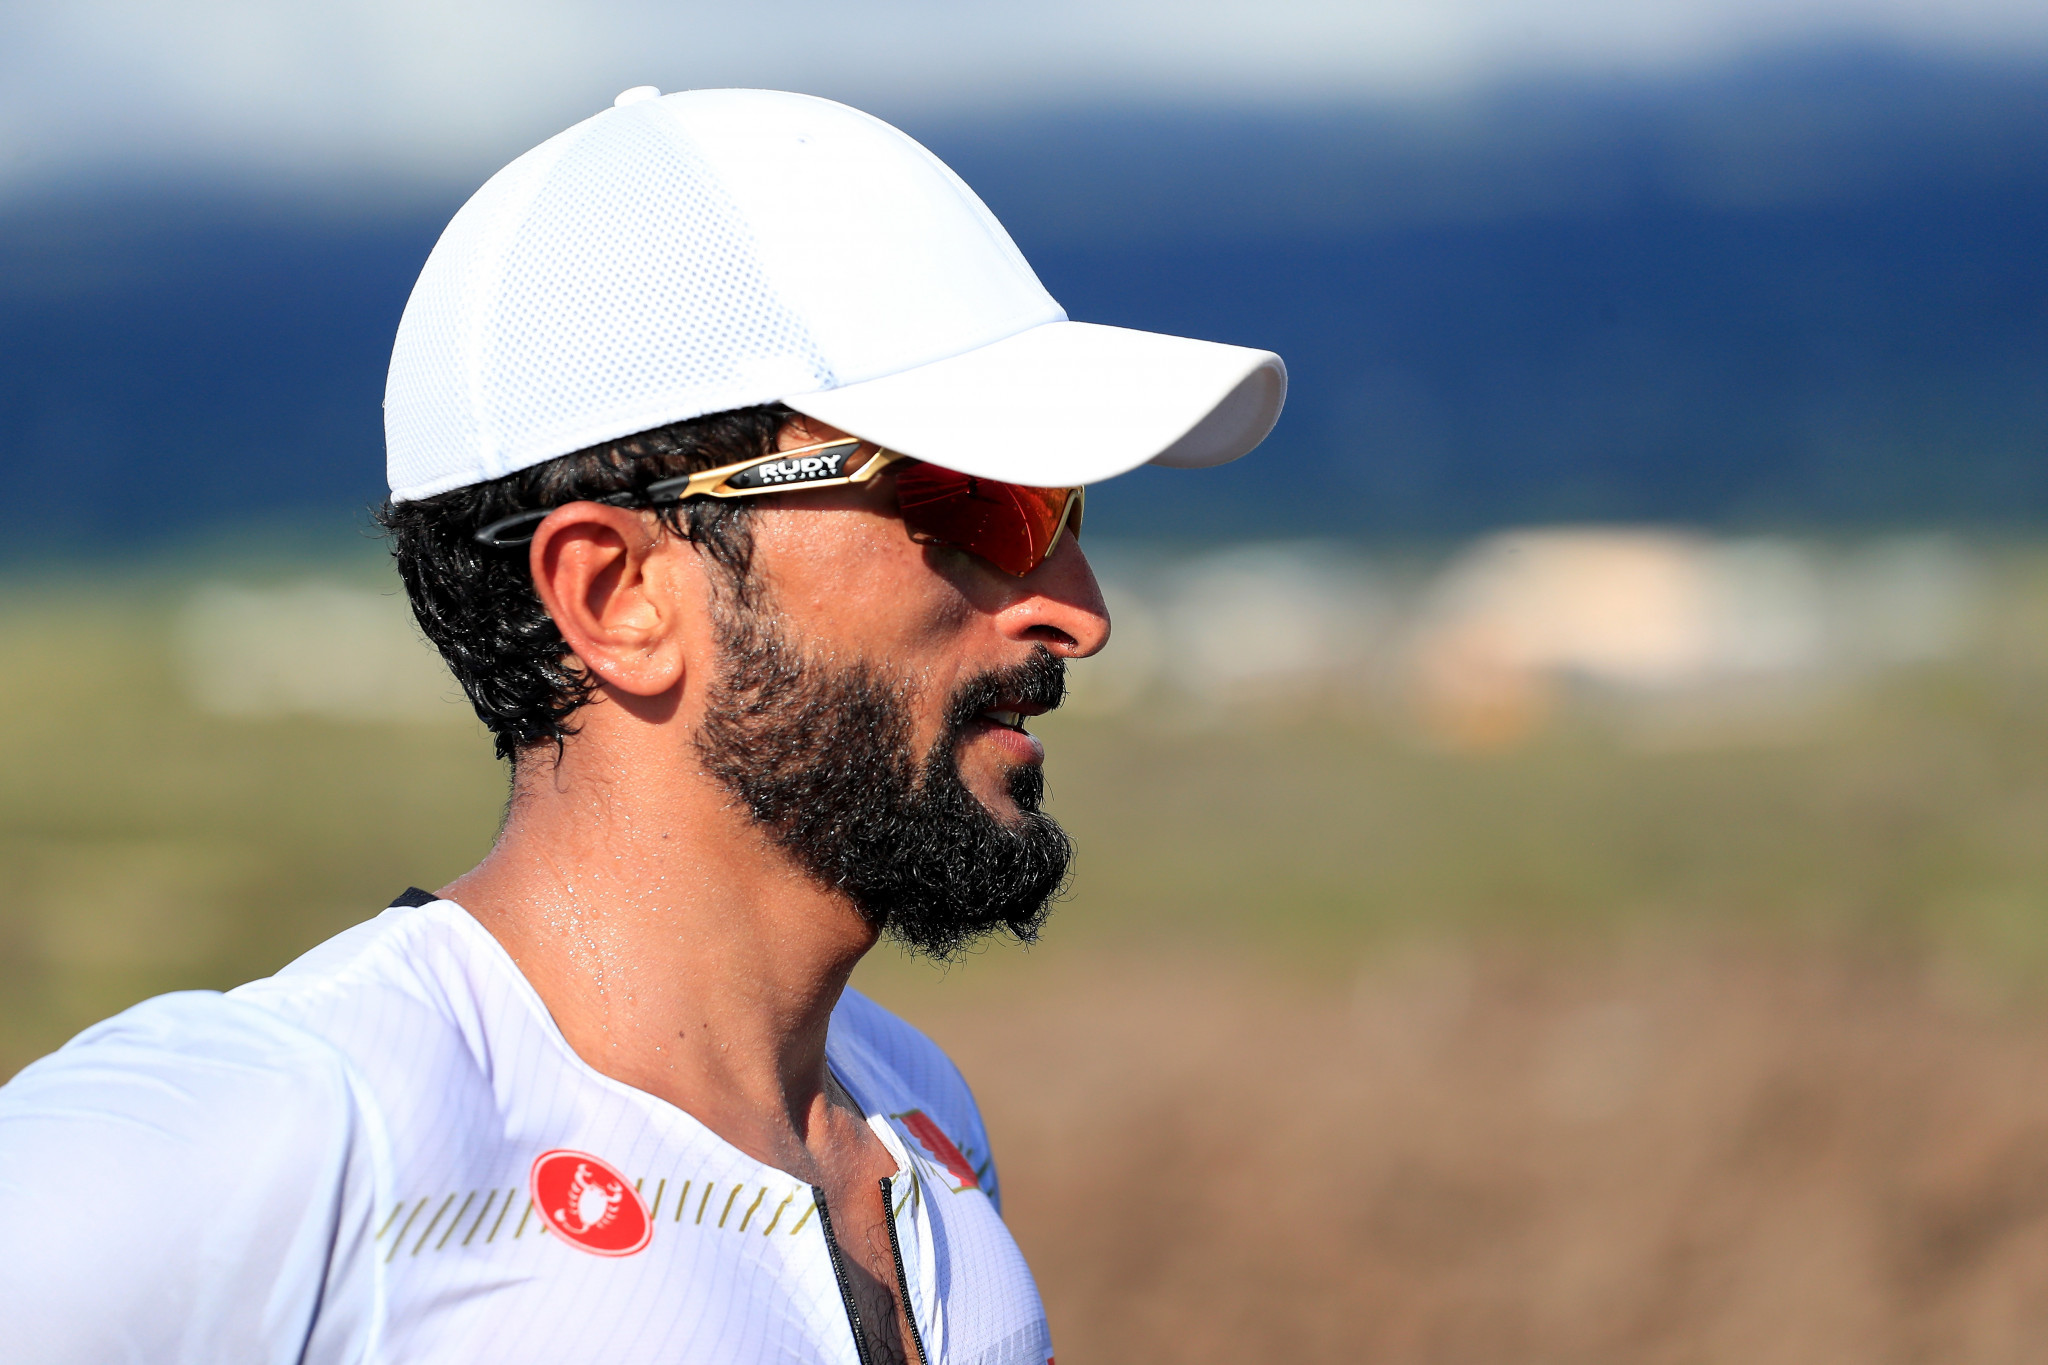 Shaikh Nasser bin Hamad Al Khalifa is stepping down as President of the Bahrain Olympic Committee ©BOC